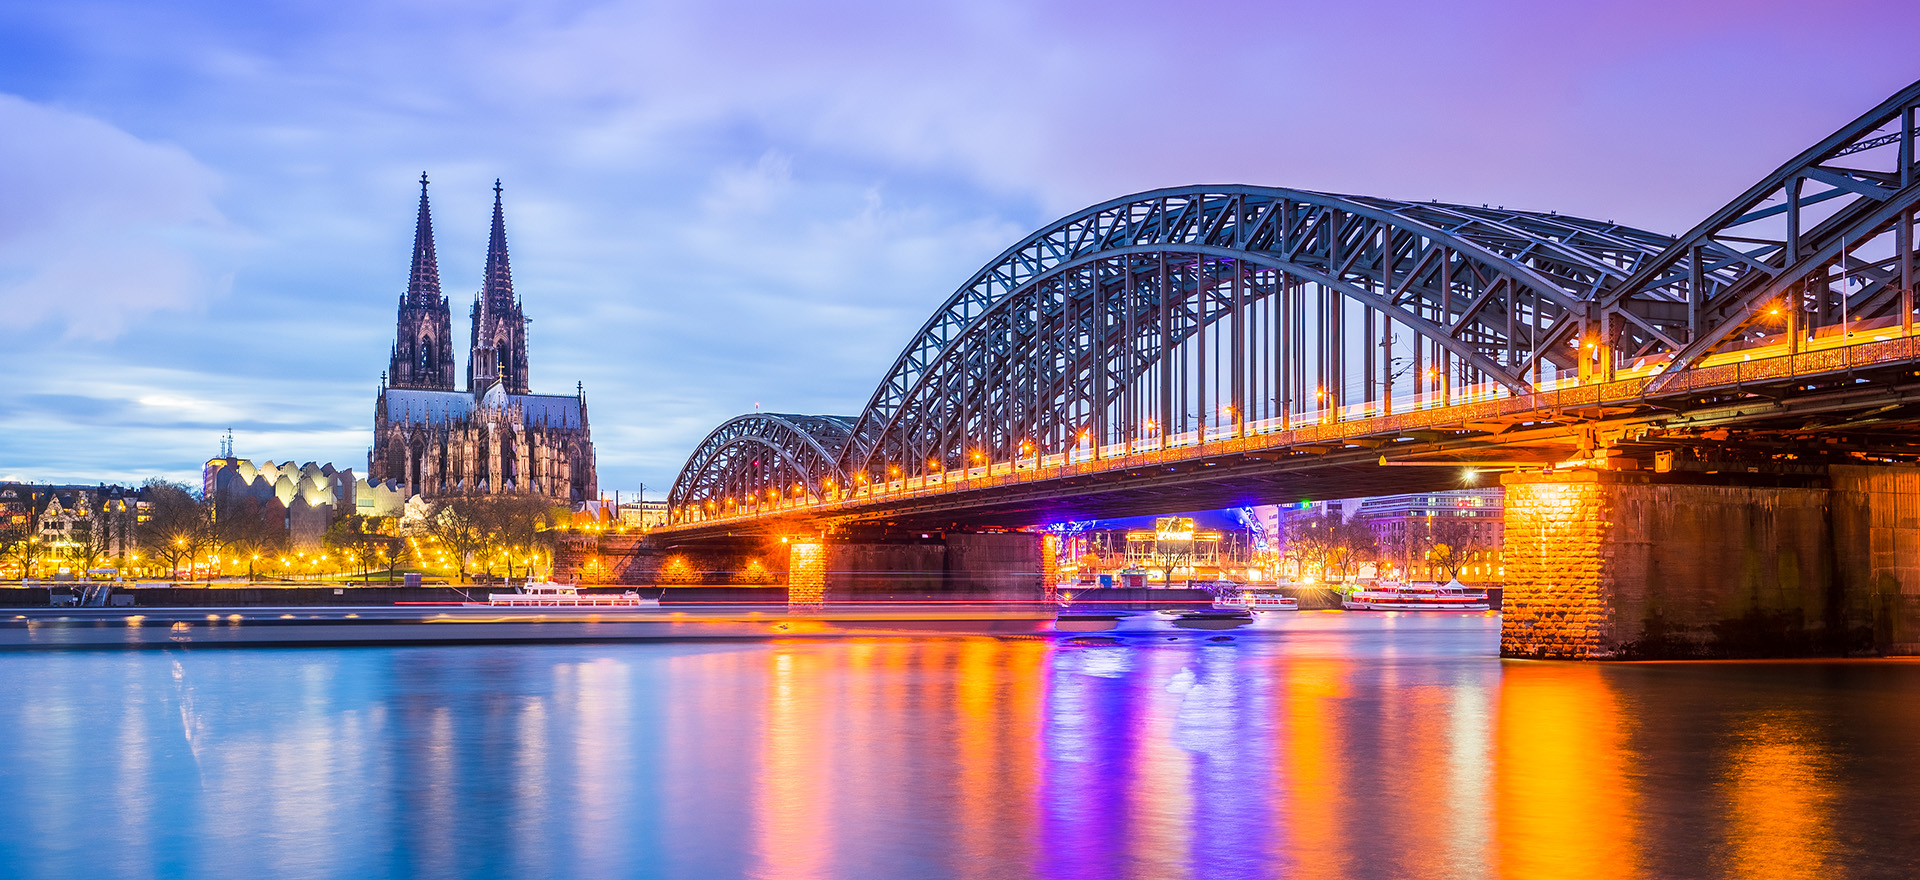 Cologne Cathedral and bridge lights over the river